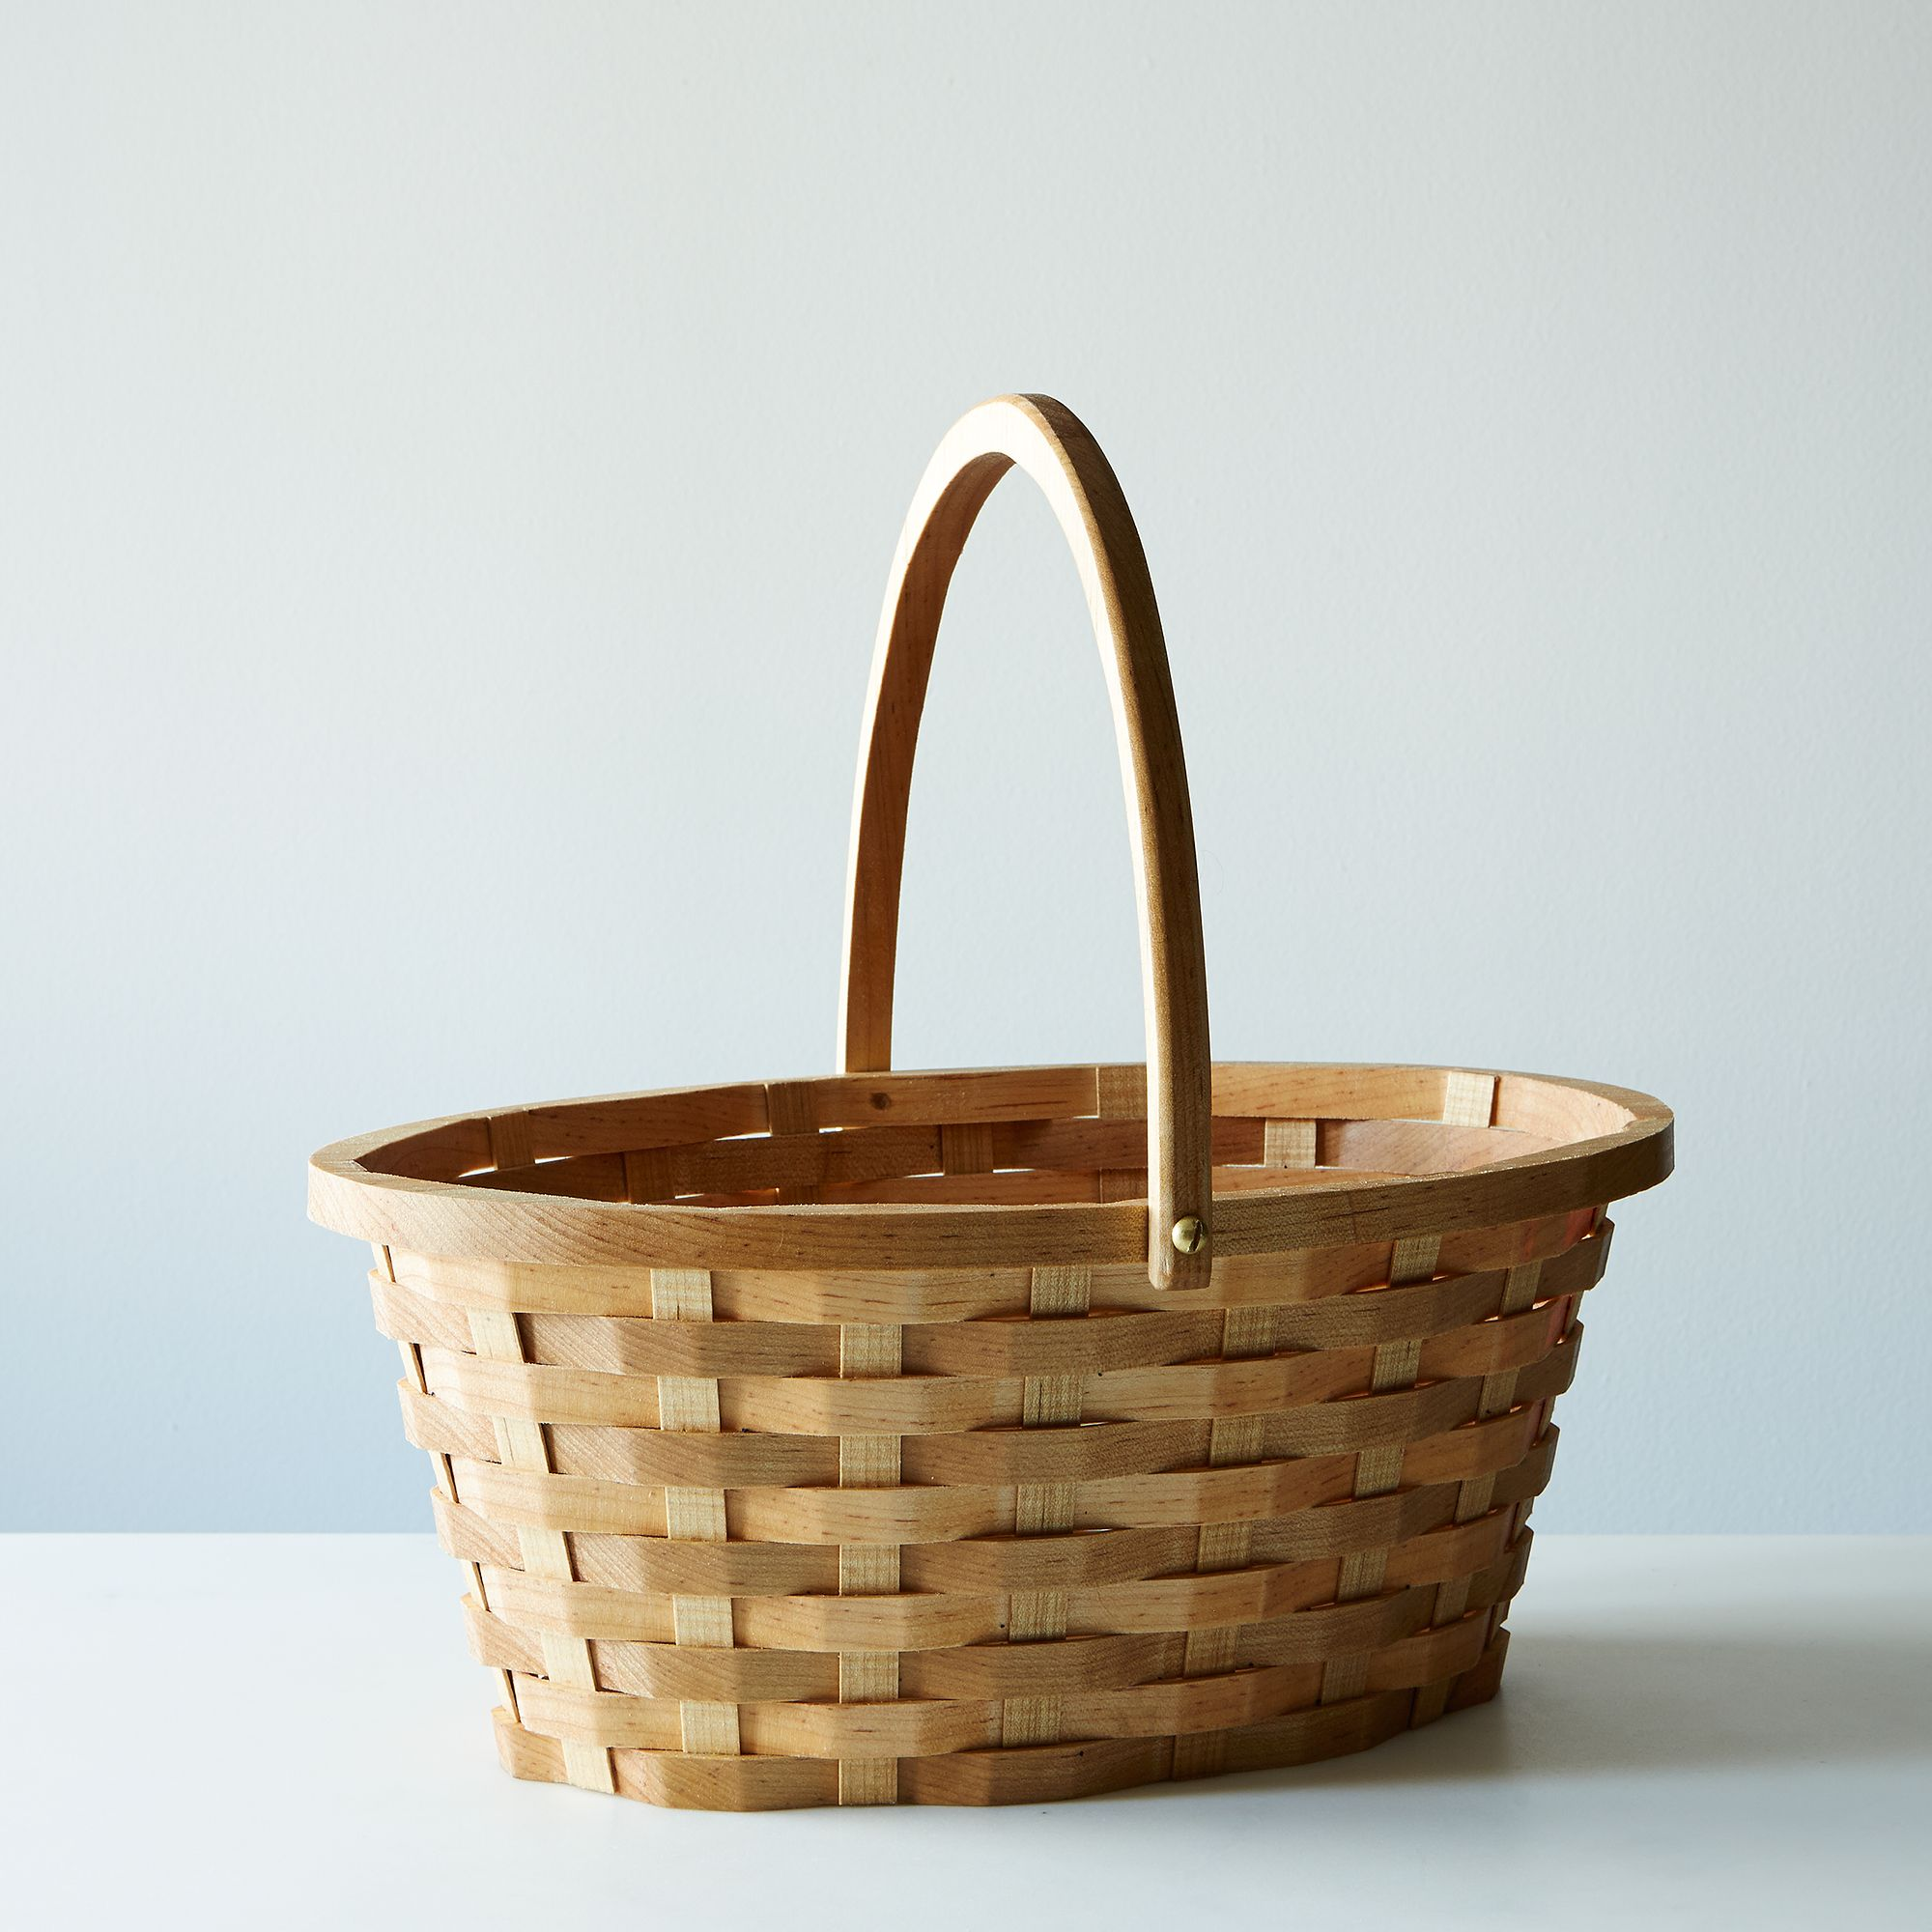 F706e148 a0f5 11e5 a190 0ef7535729df  baskets by debi wooden easter baskets soft maple 6217 silo